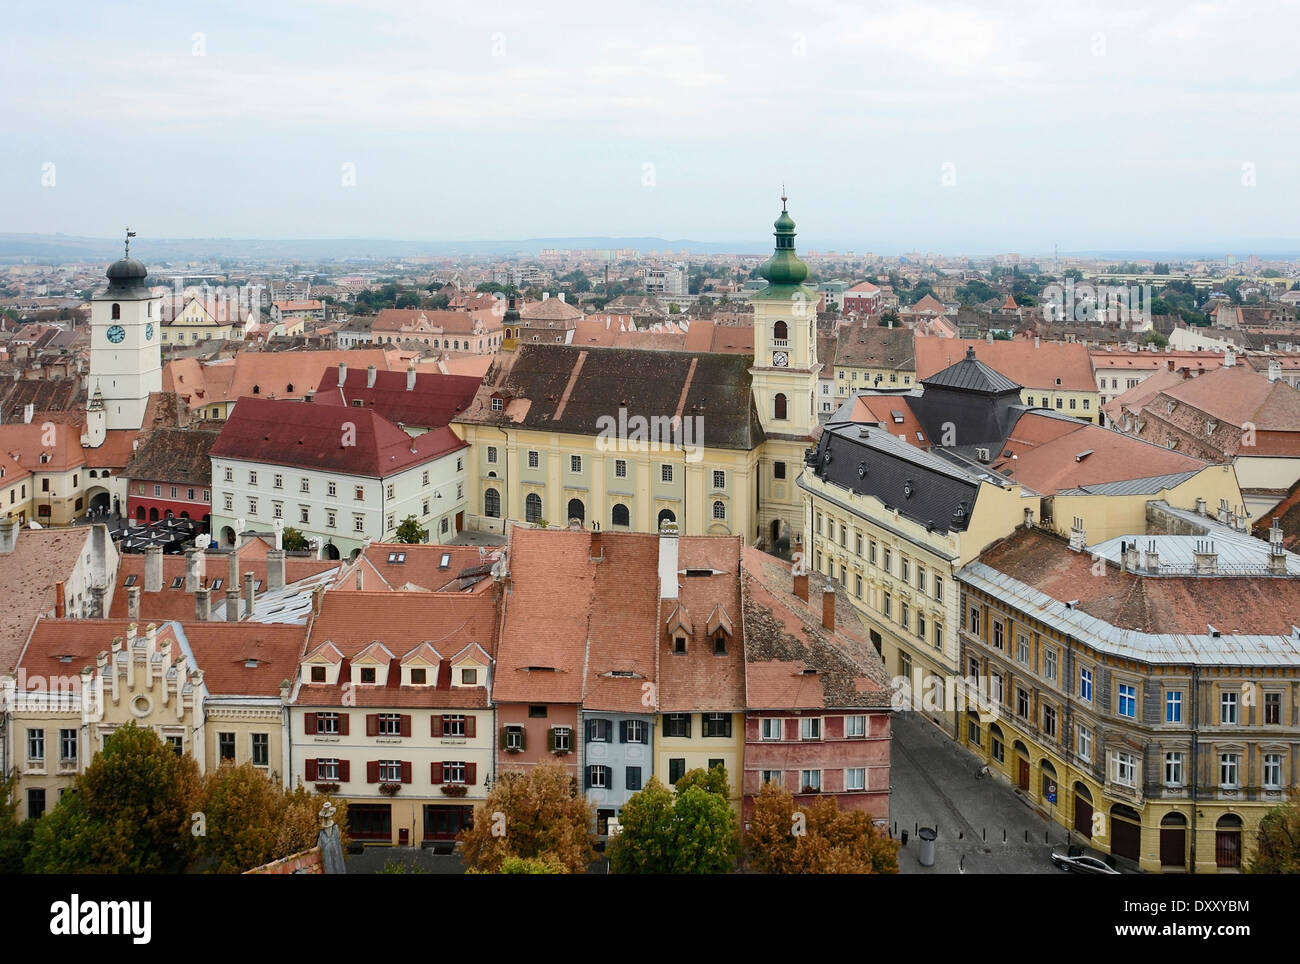 aerial view of Sibiu, a city in Romania - Stock Image